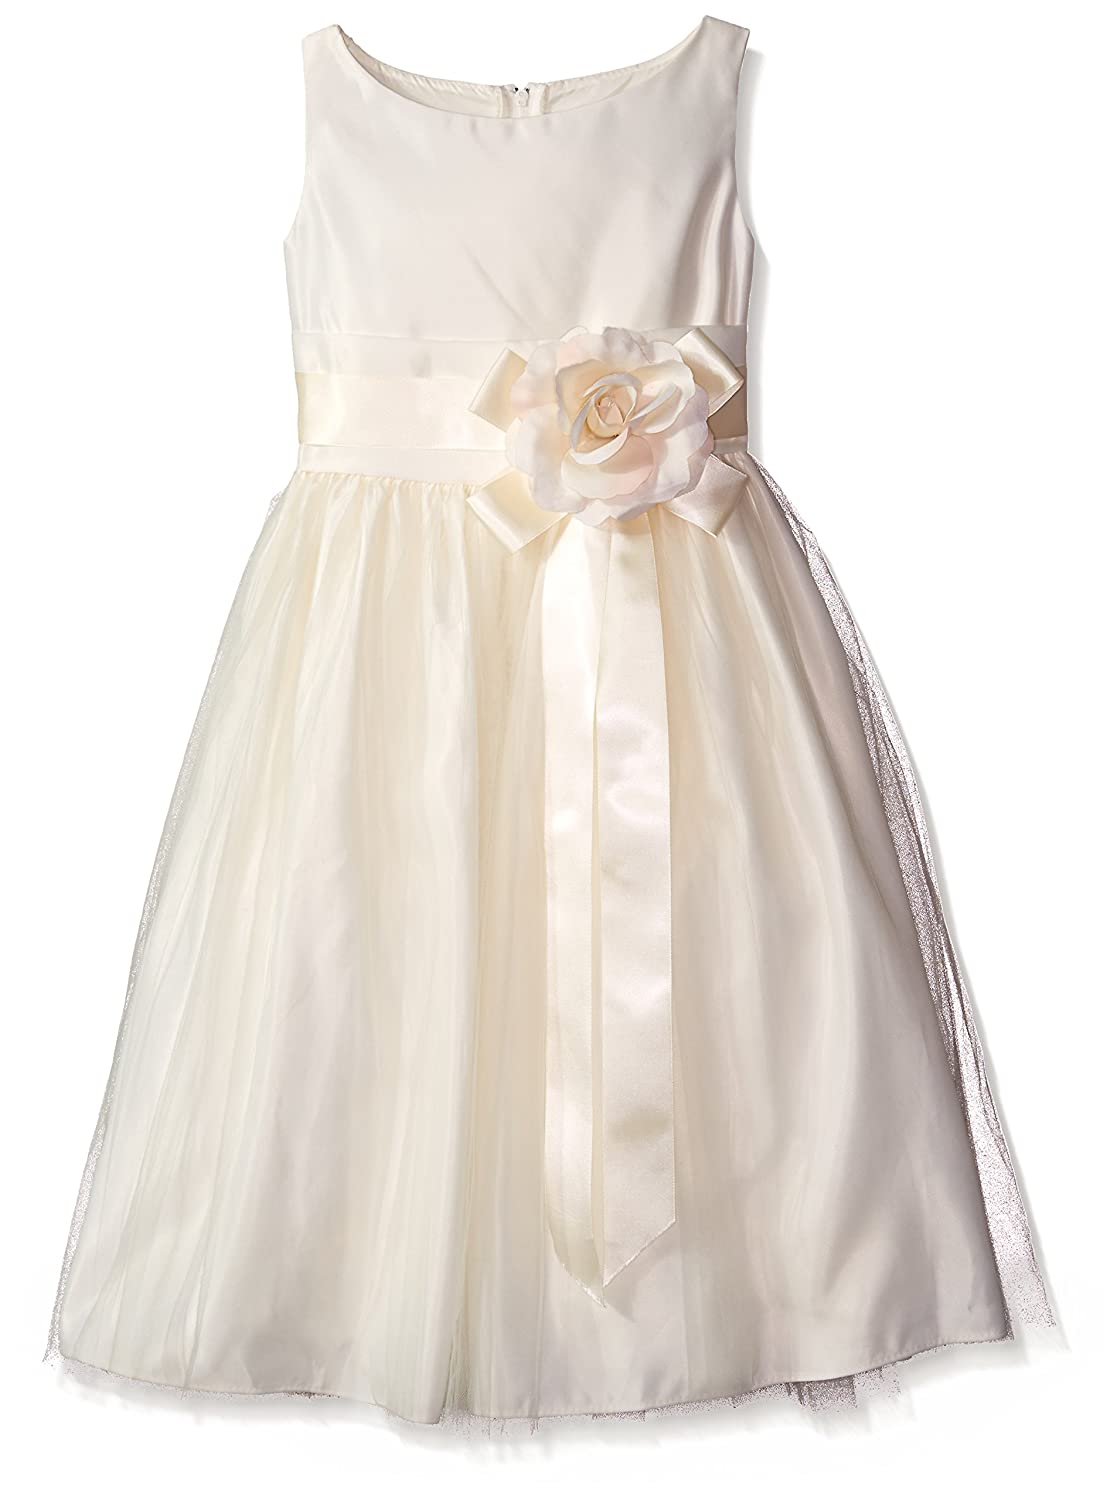 8081cd9b125 Vintage Satin   Tulle Special Occasion Sleeveless Tea Length Dress Infant  Toddler Little Girl s Dress Infant sizes  Small (3-6 Months )